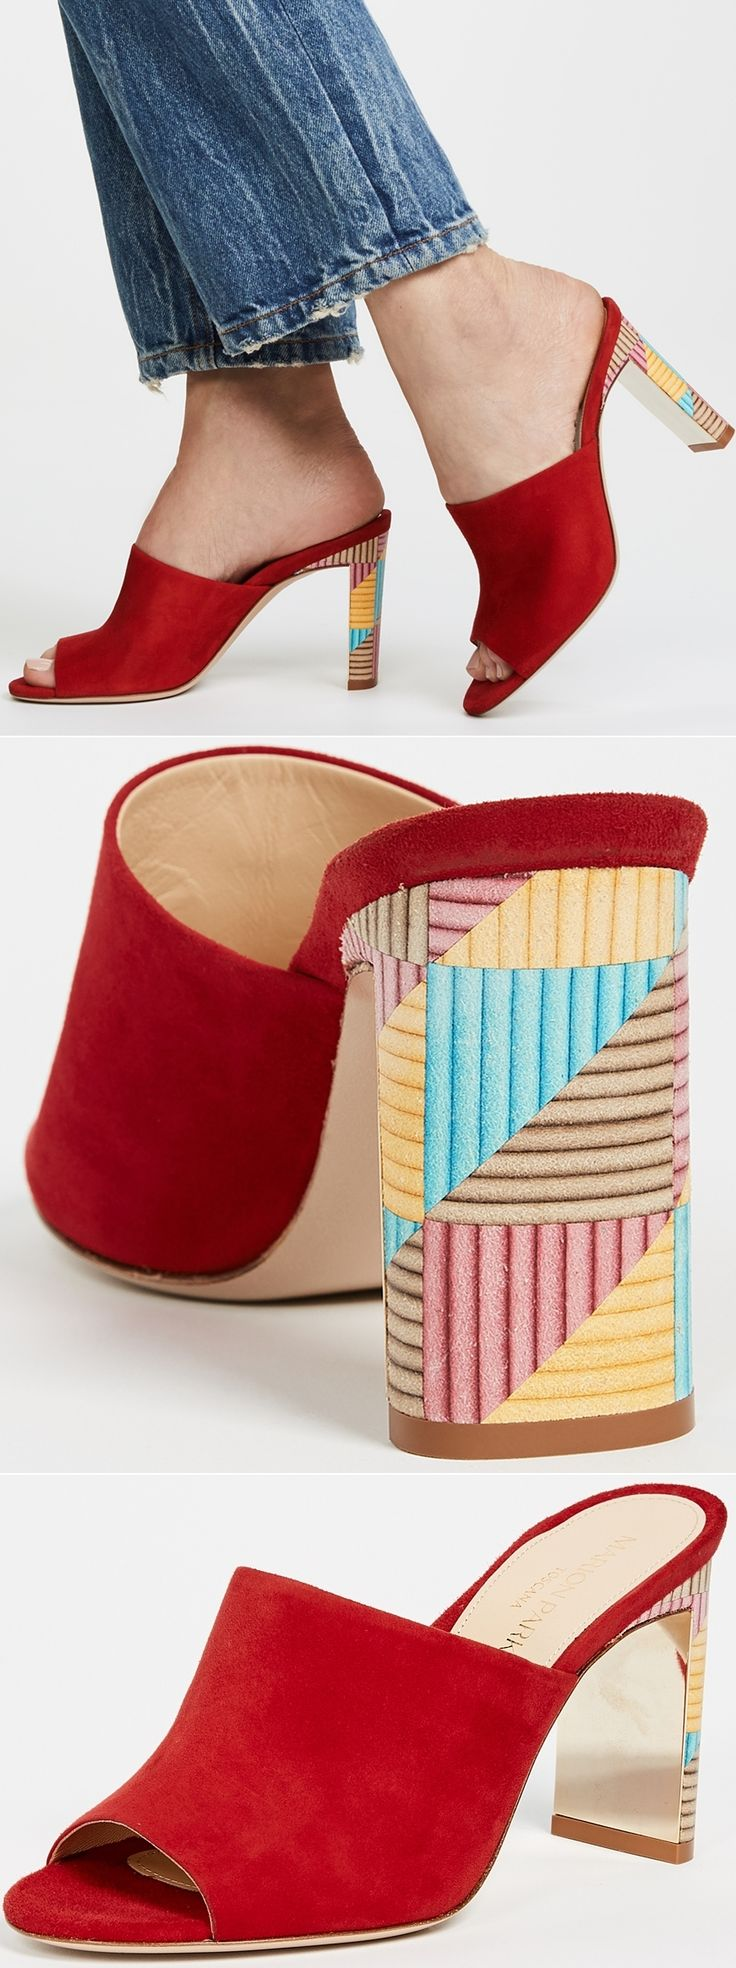 Bold red and a fun geometric pattern on the heel make these Marion Parke Louisa Mules an irresistibly exciting addition to your stand-out shoe collection